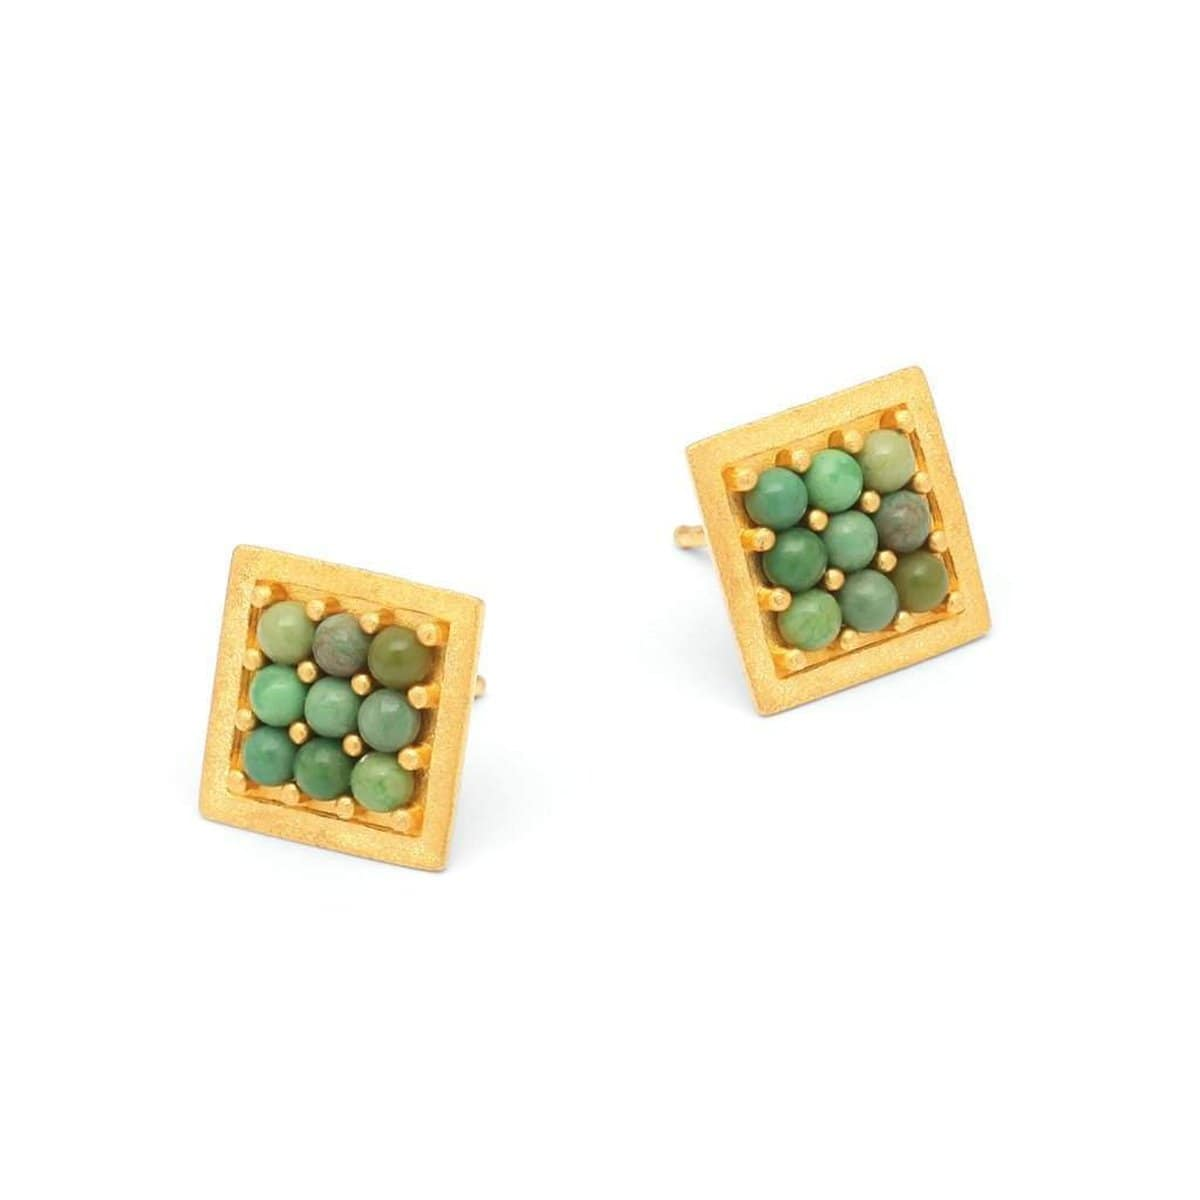 Pacu Green Turquoise Pin Earrings - 19930356